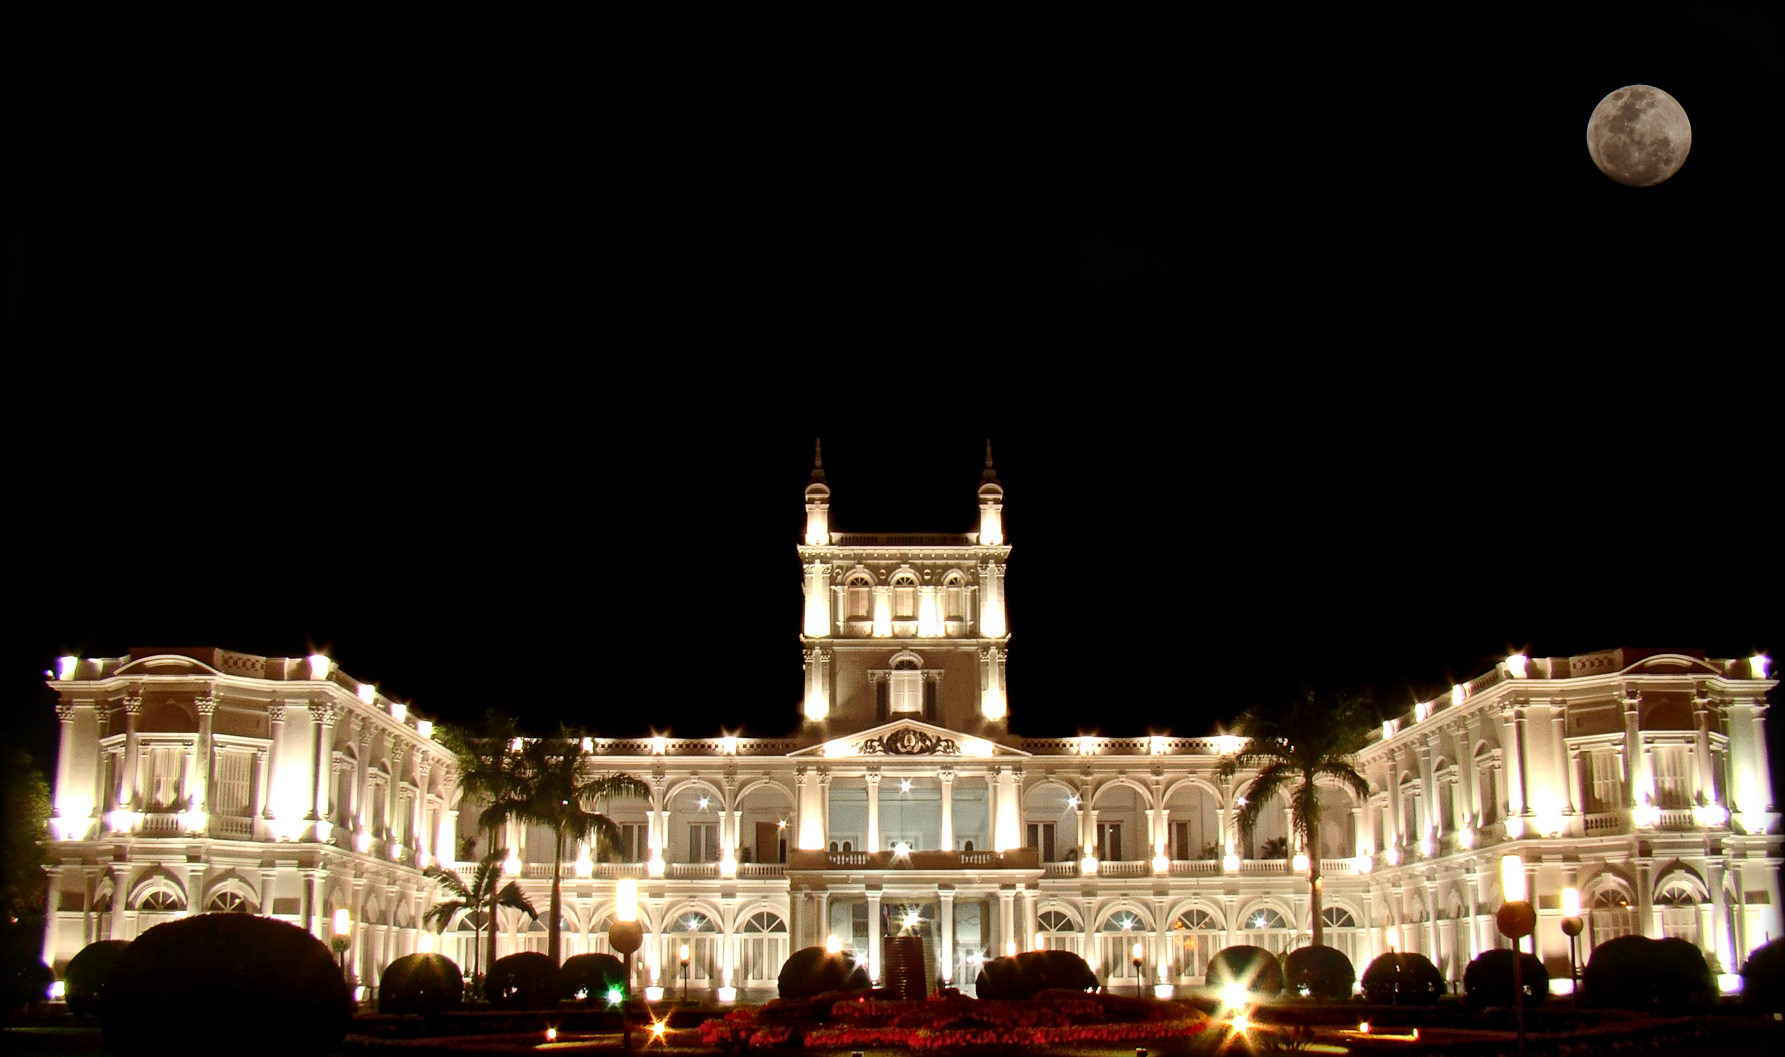 https://upload.wikimedia.org/wikipedia/commons/b/b5/Palacio_de_L%C3%B3pez_de_noche.jpg